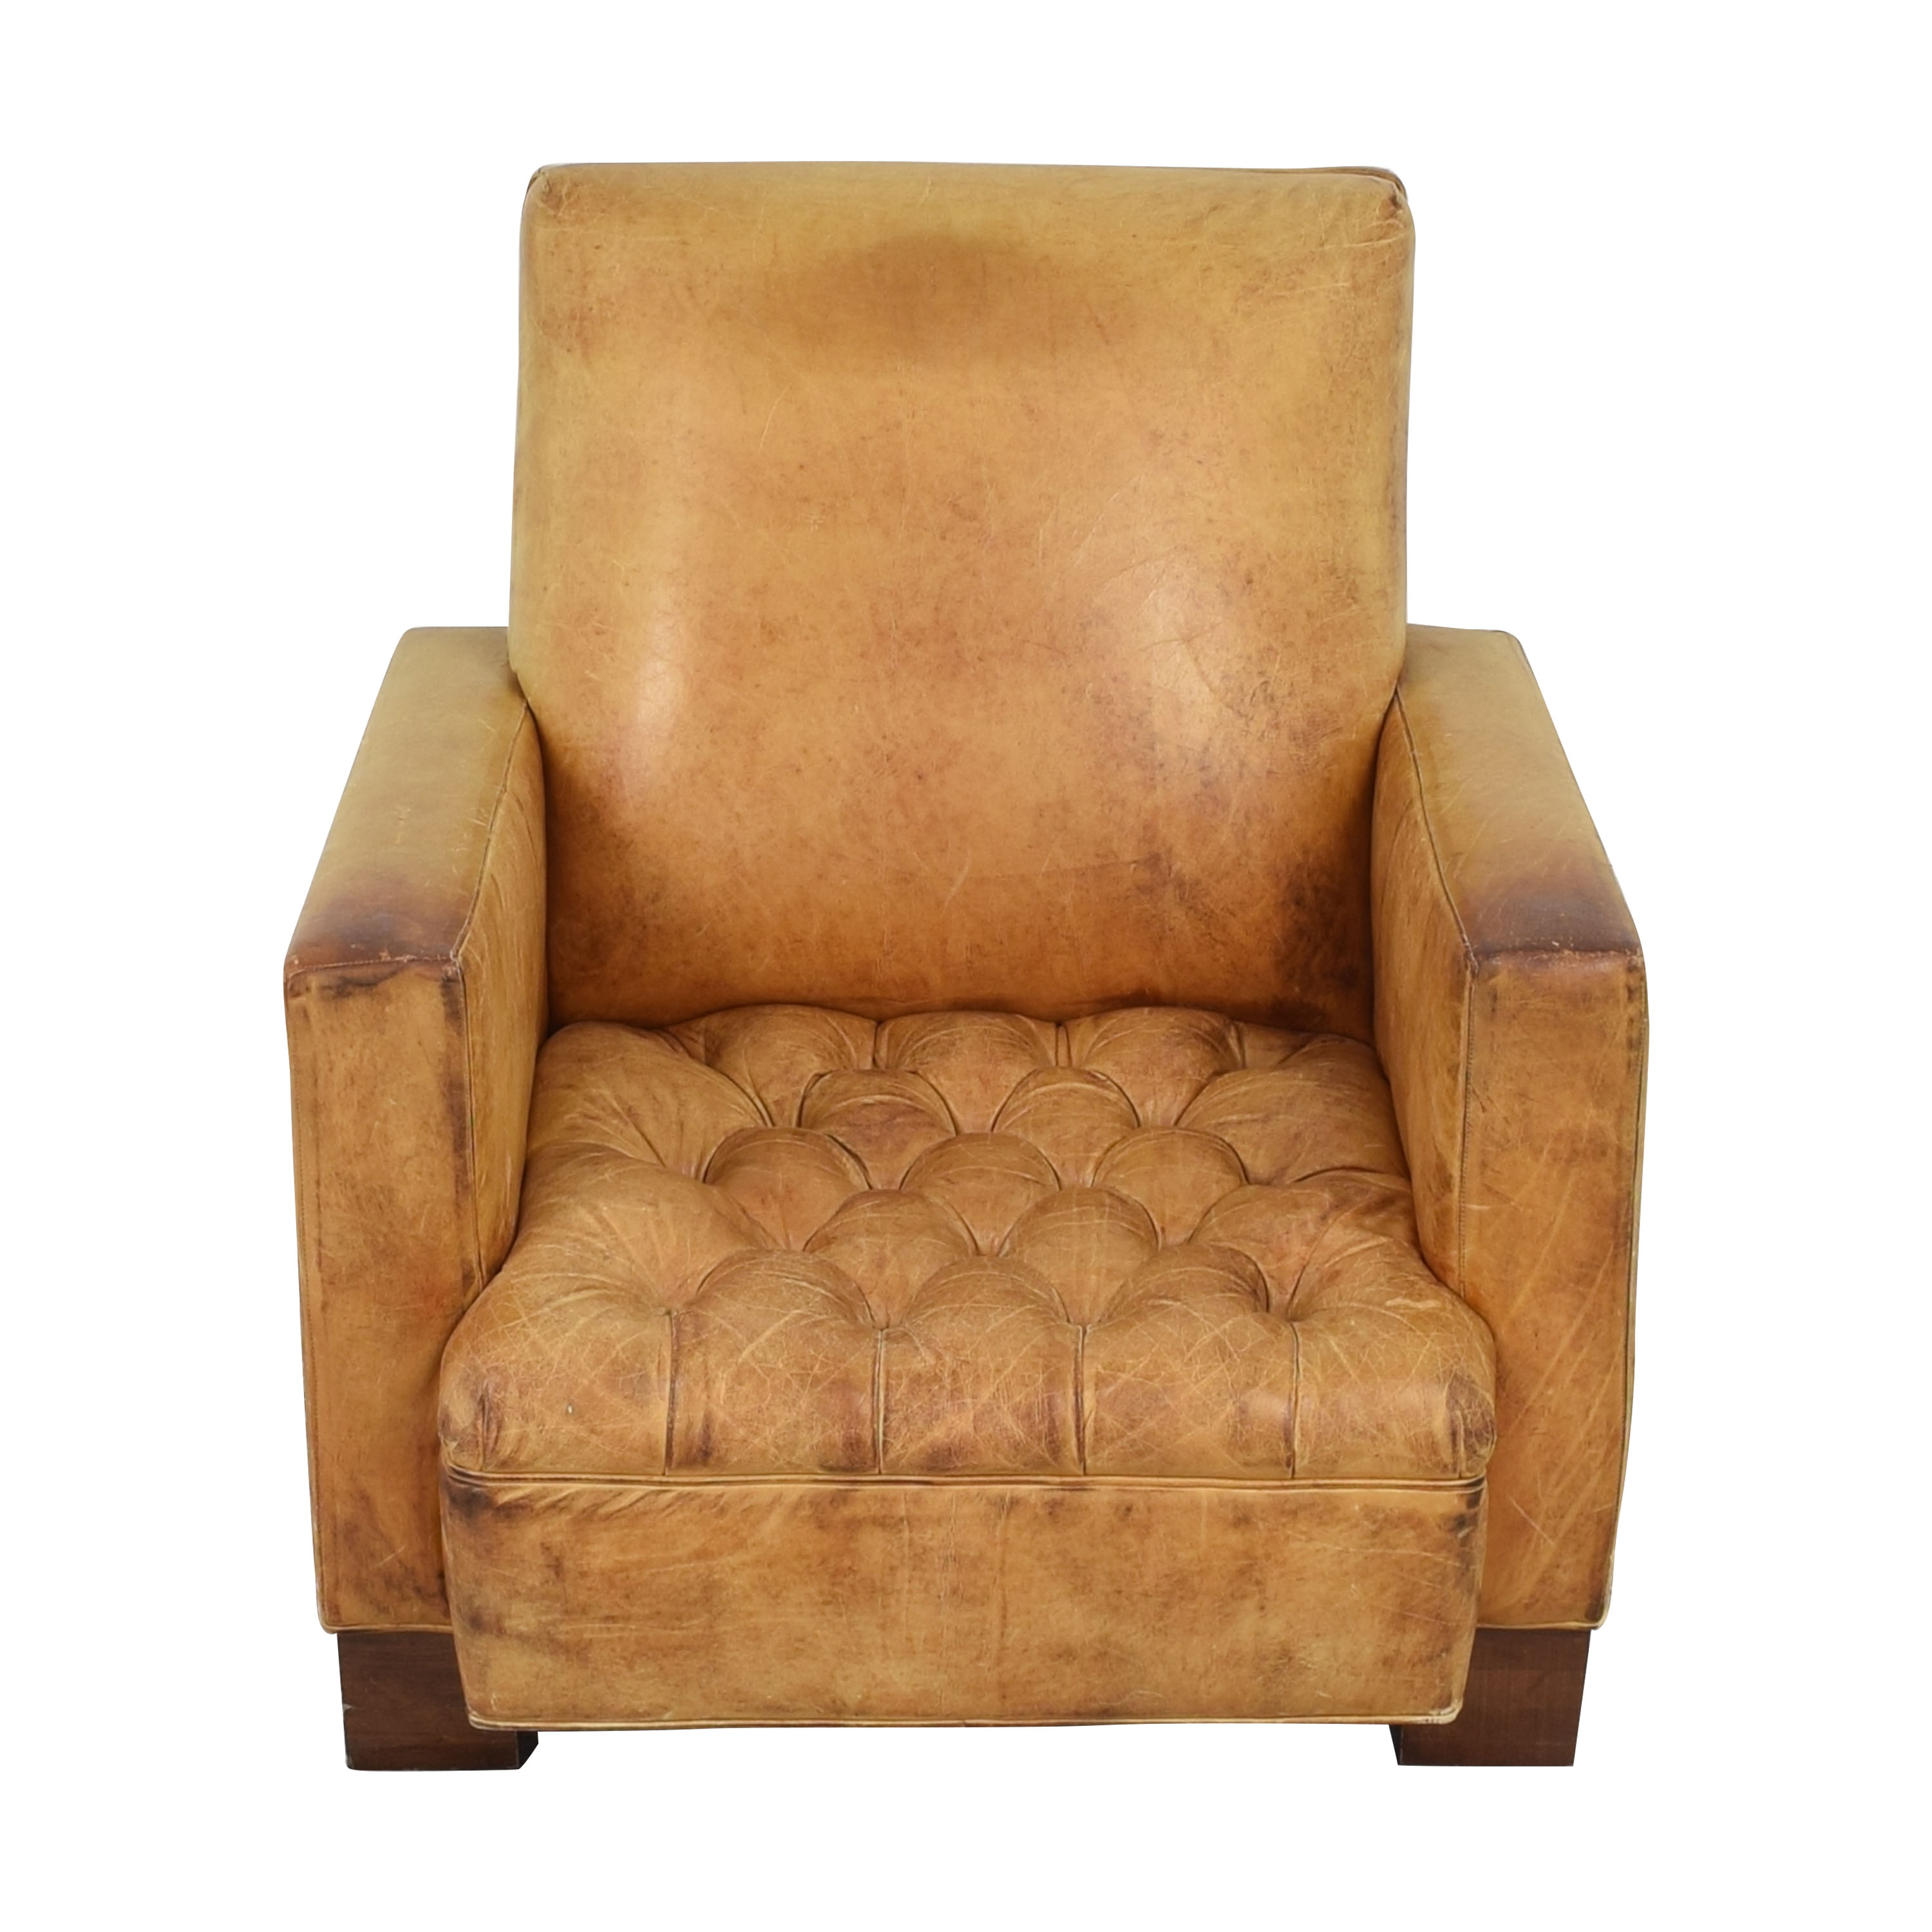 ABC Carpet & Home ABC Carpet & Home Accent Chair brown